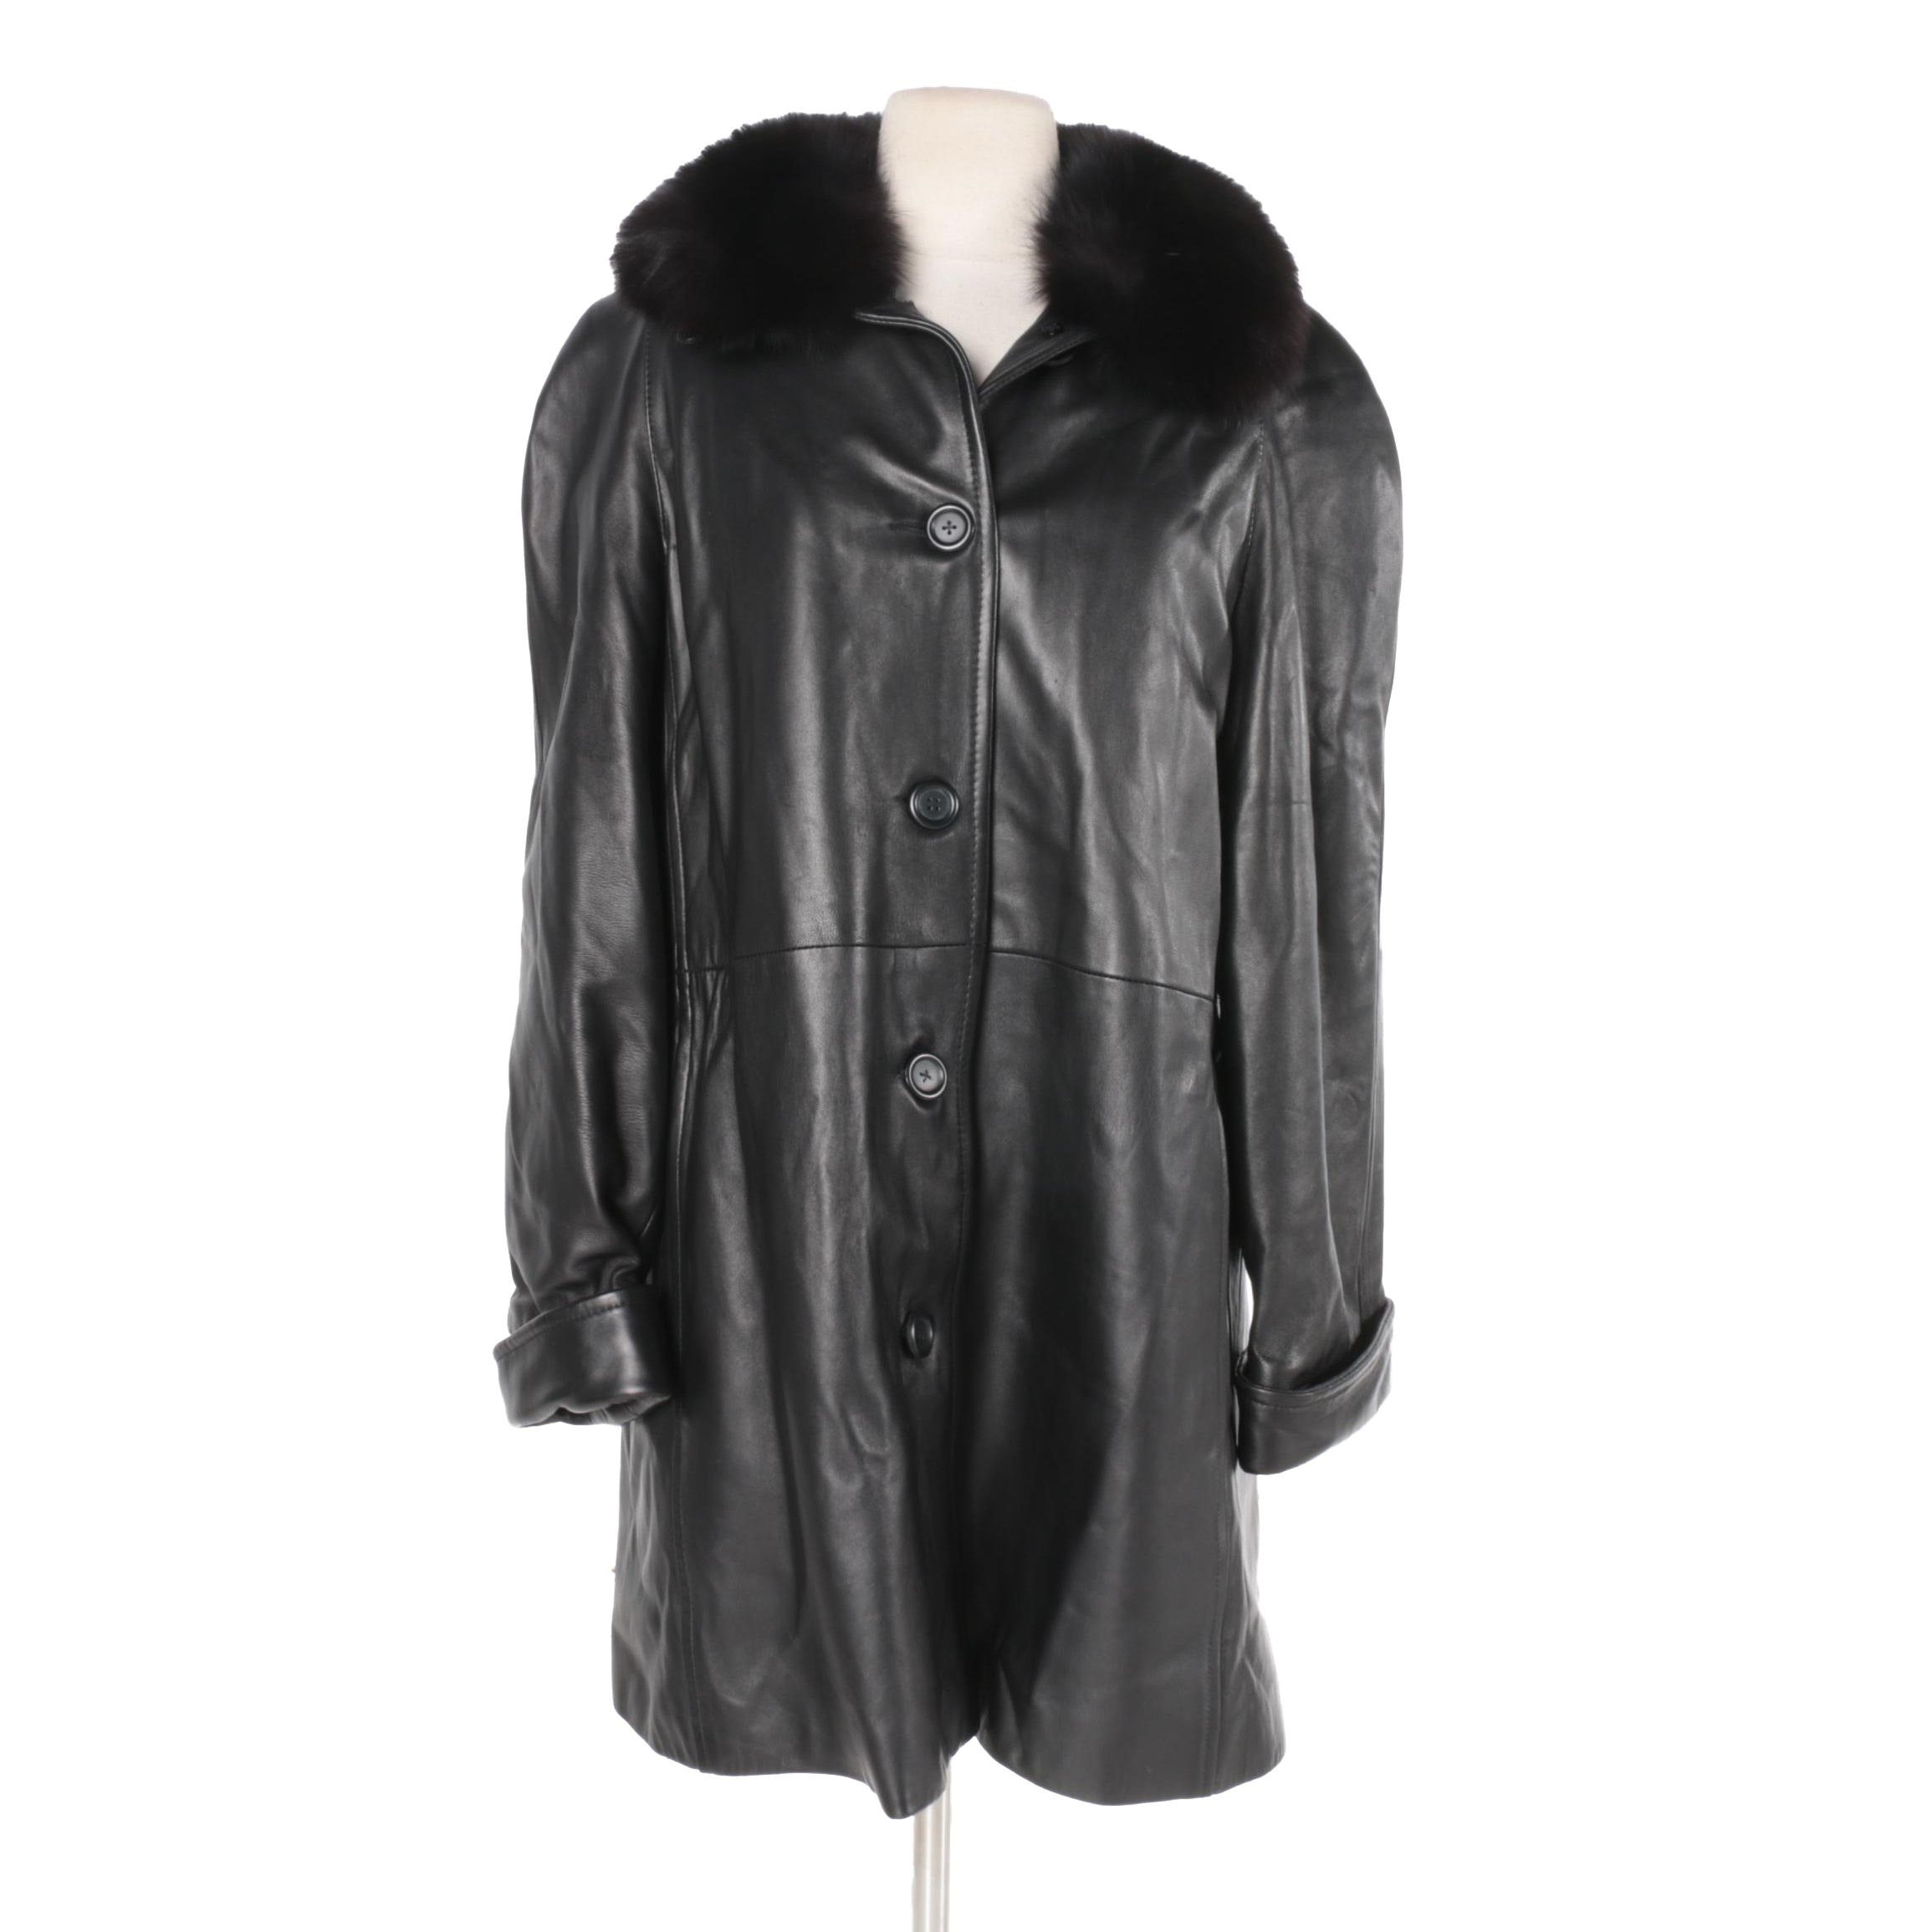 Marvin Richards Black Leather Coat with Fox Fur Collar